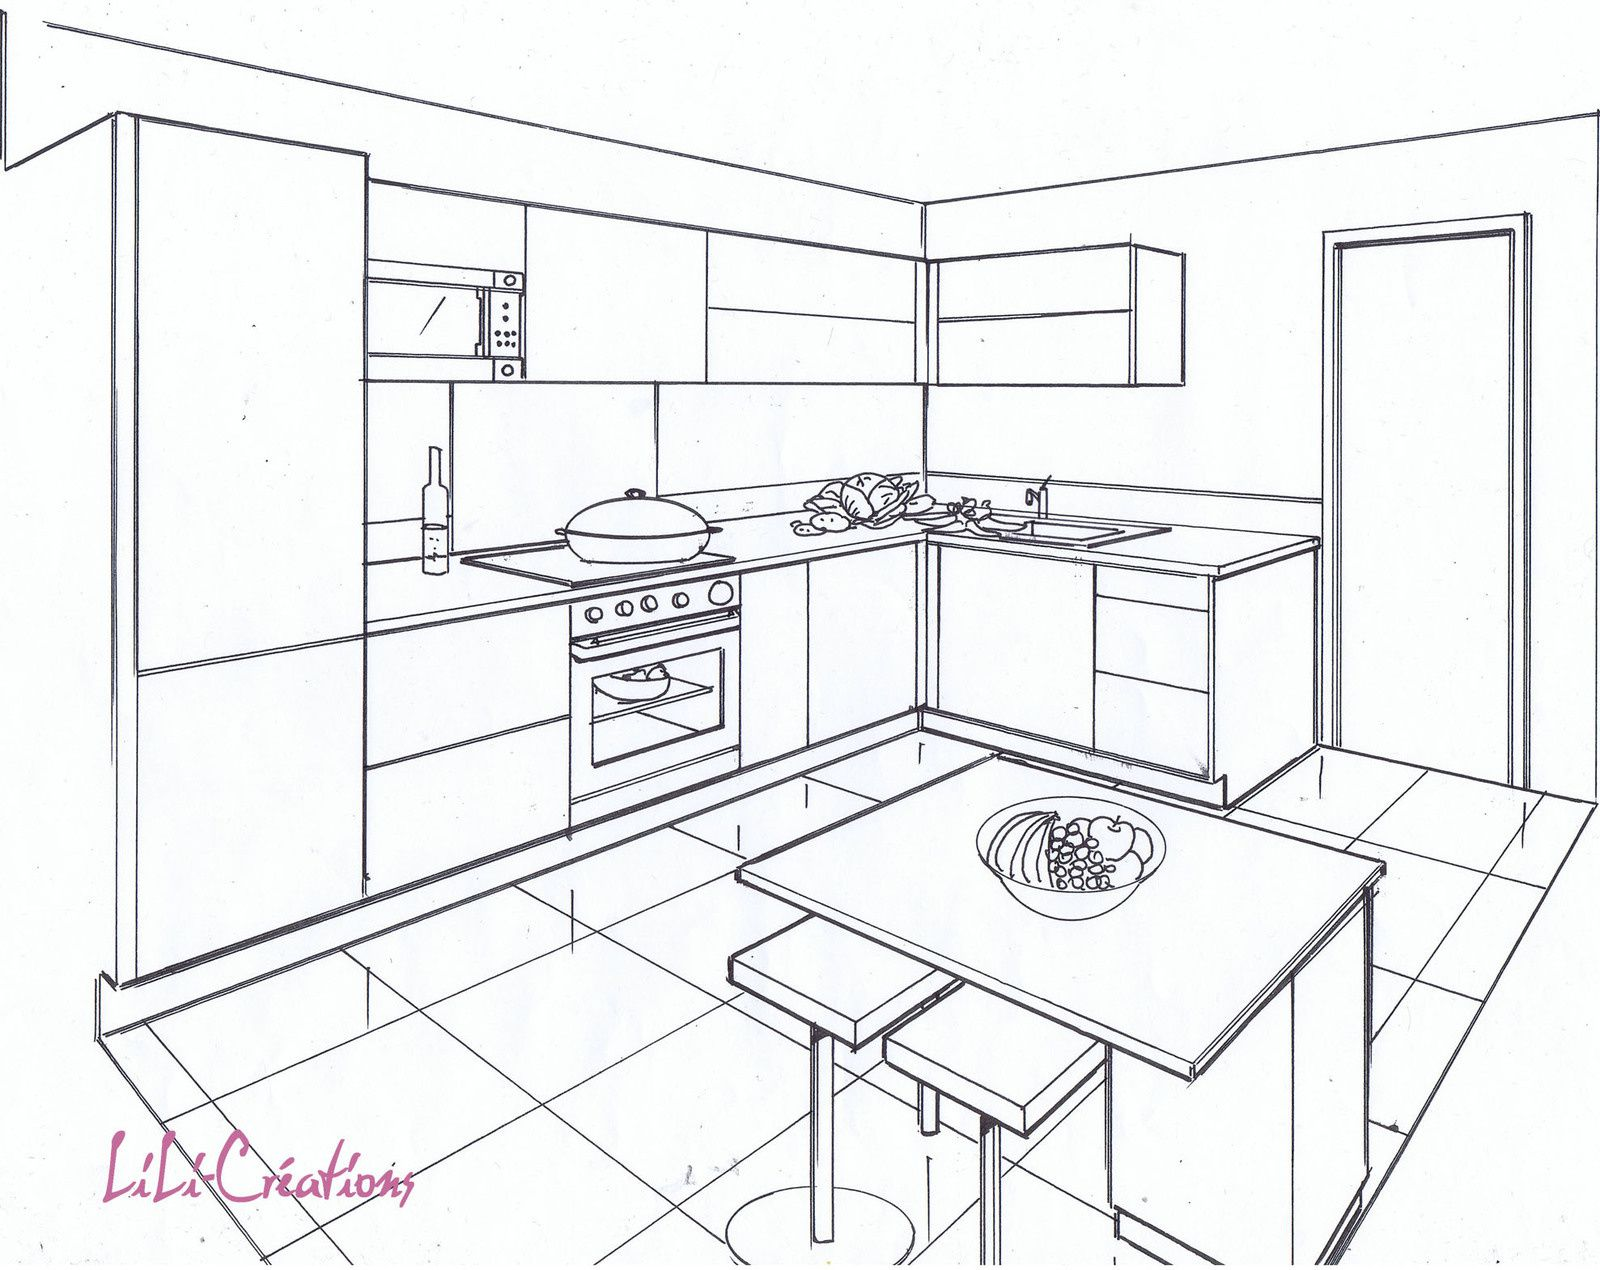 dessiner sa cuisine dessiner sa cuisine en 3d 28 images dessiner sa dessiner sa cuisine. Black Bedroom Furniture Sets. Home Design Ideas